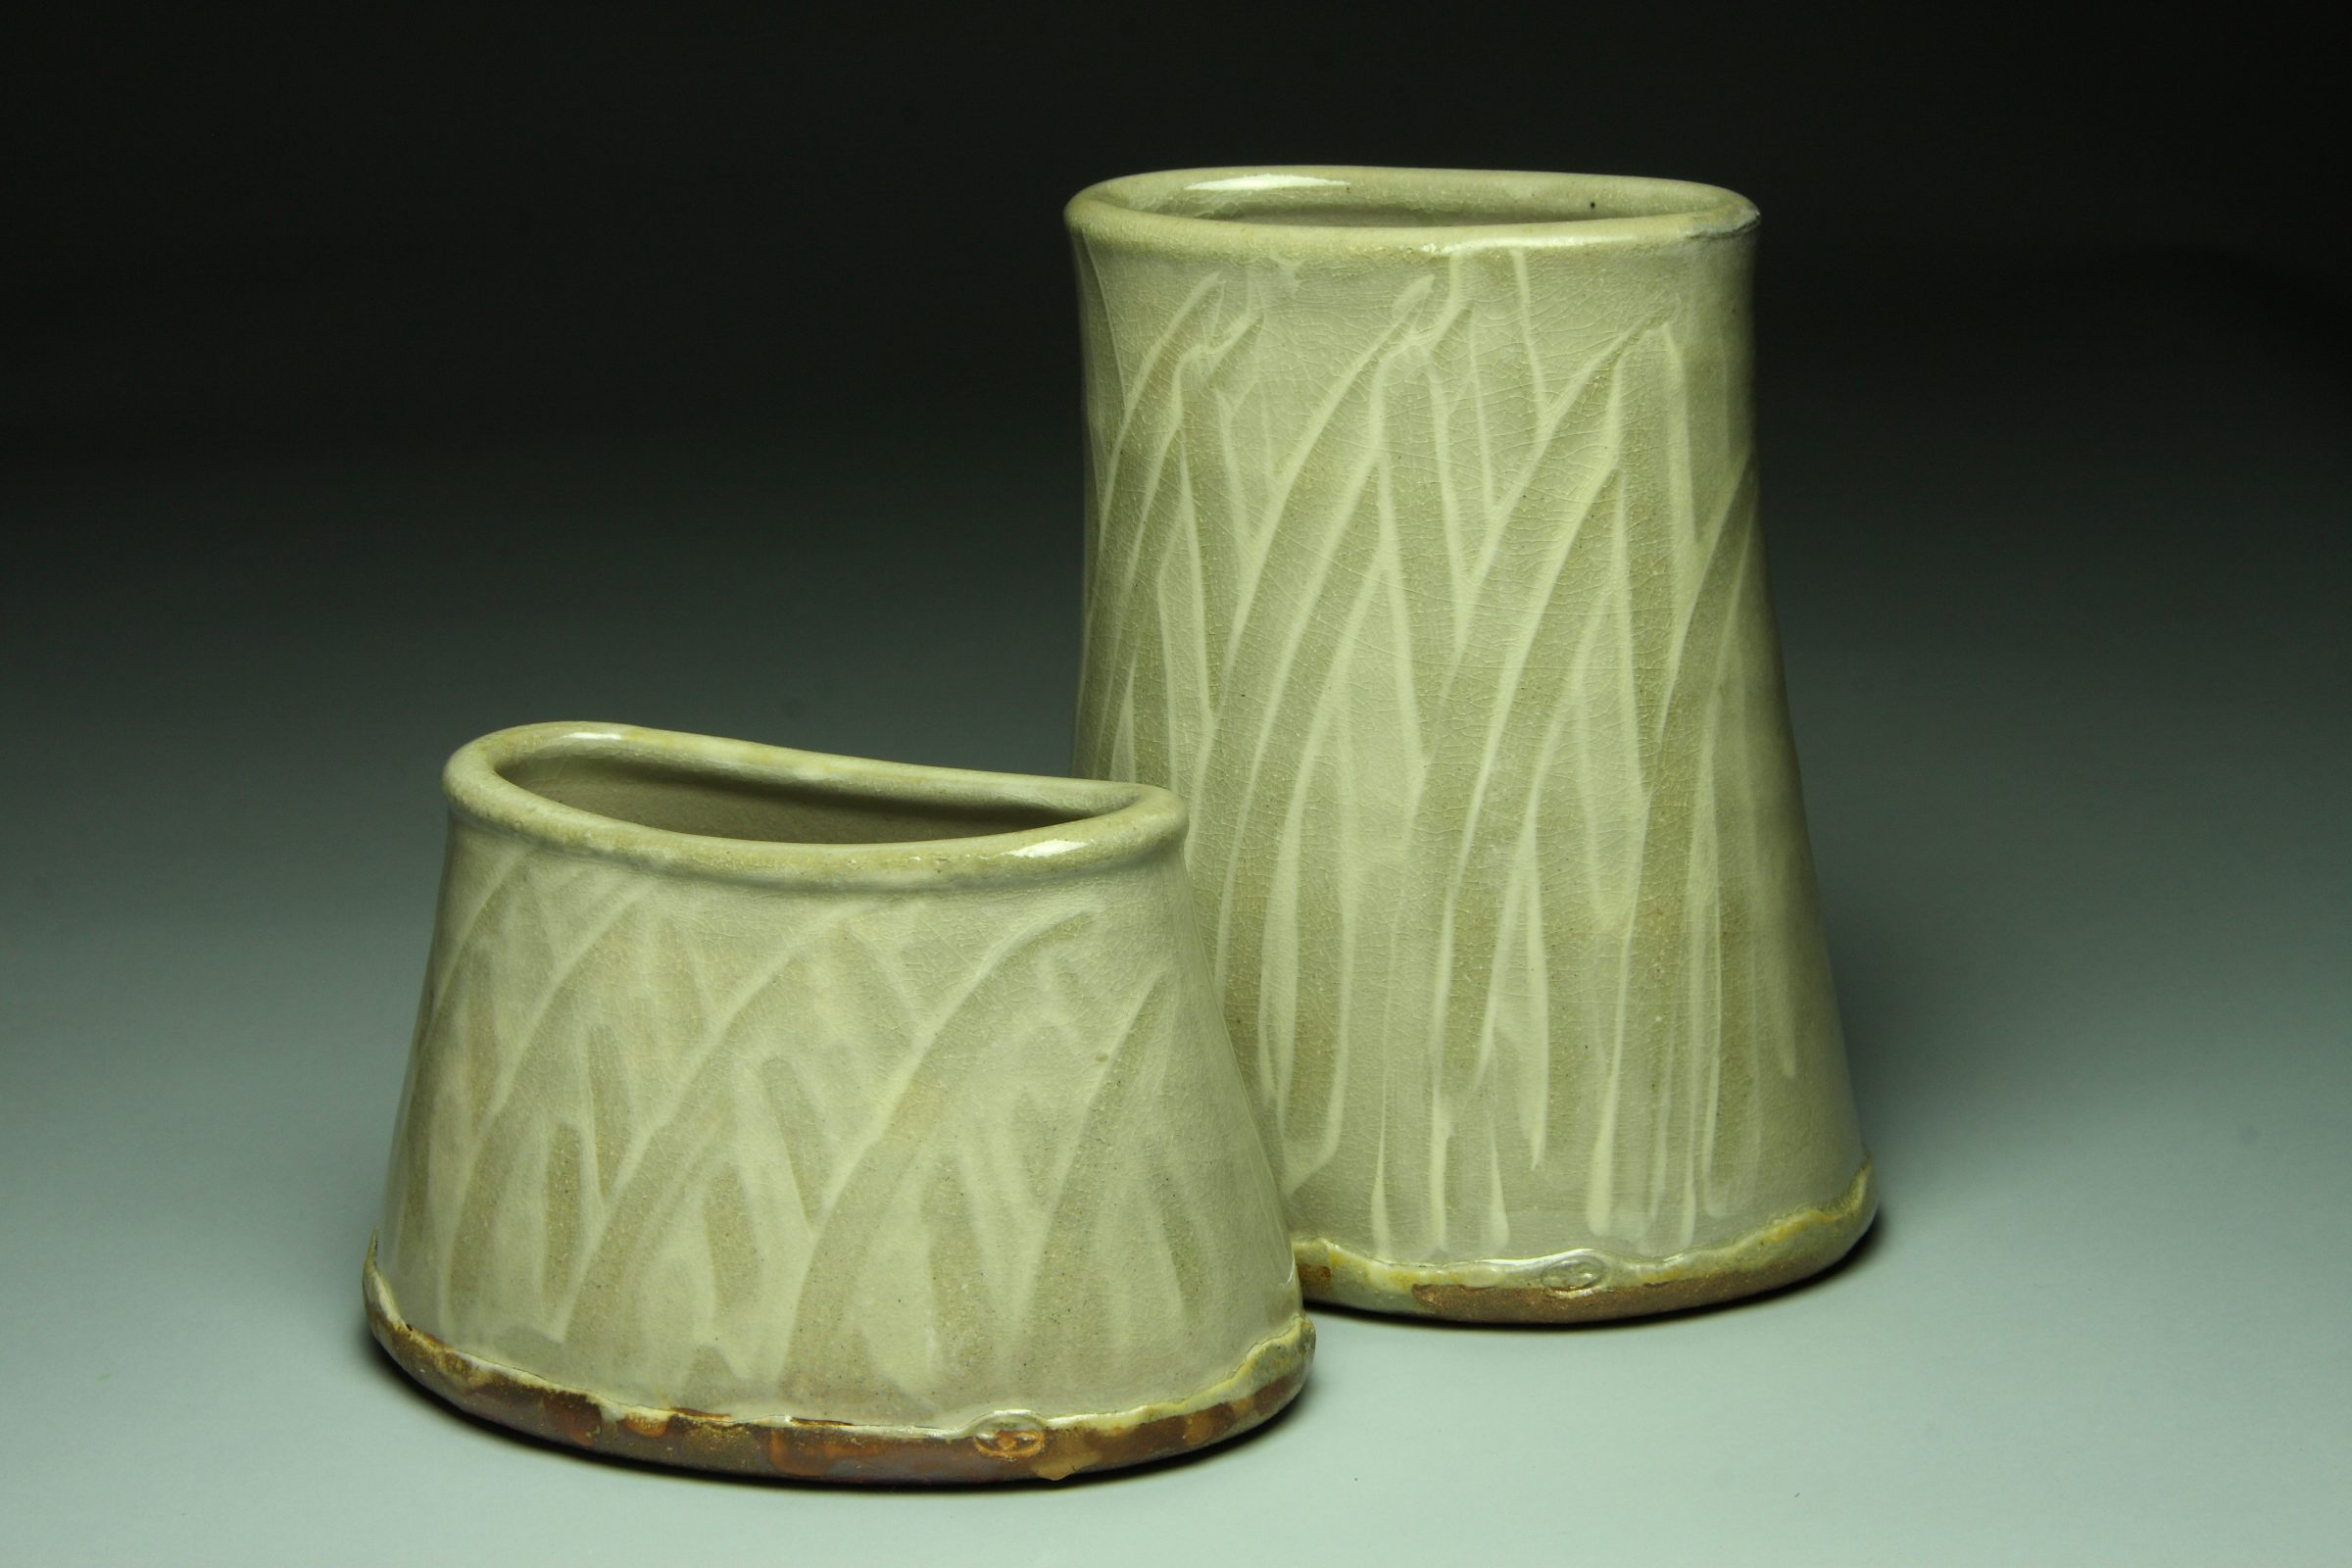 wood-fired vases with pattern